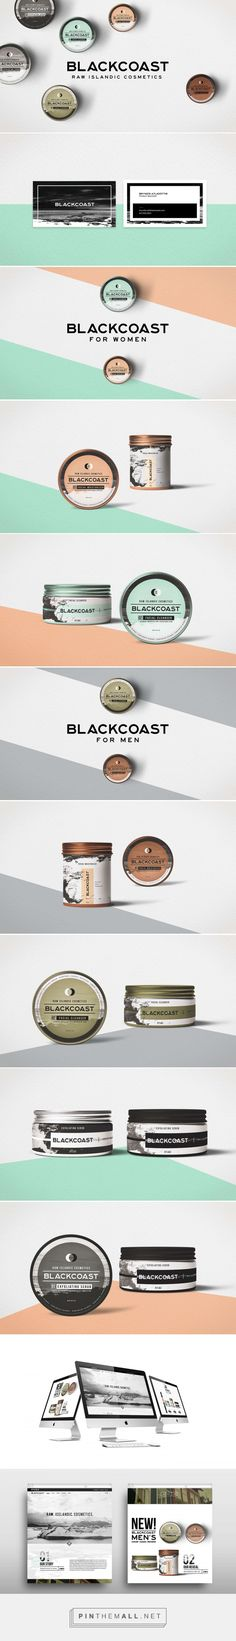 Blackcoast Raw Islandics Cosmetic Branding and Packaging by BADD Design | Fivestar Branding Agency – Design and Branding Agency & Curated Inspiration Gallery